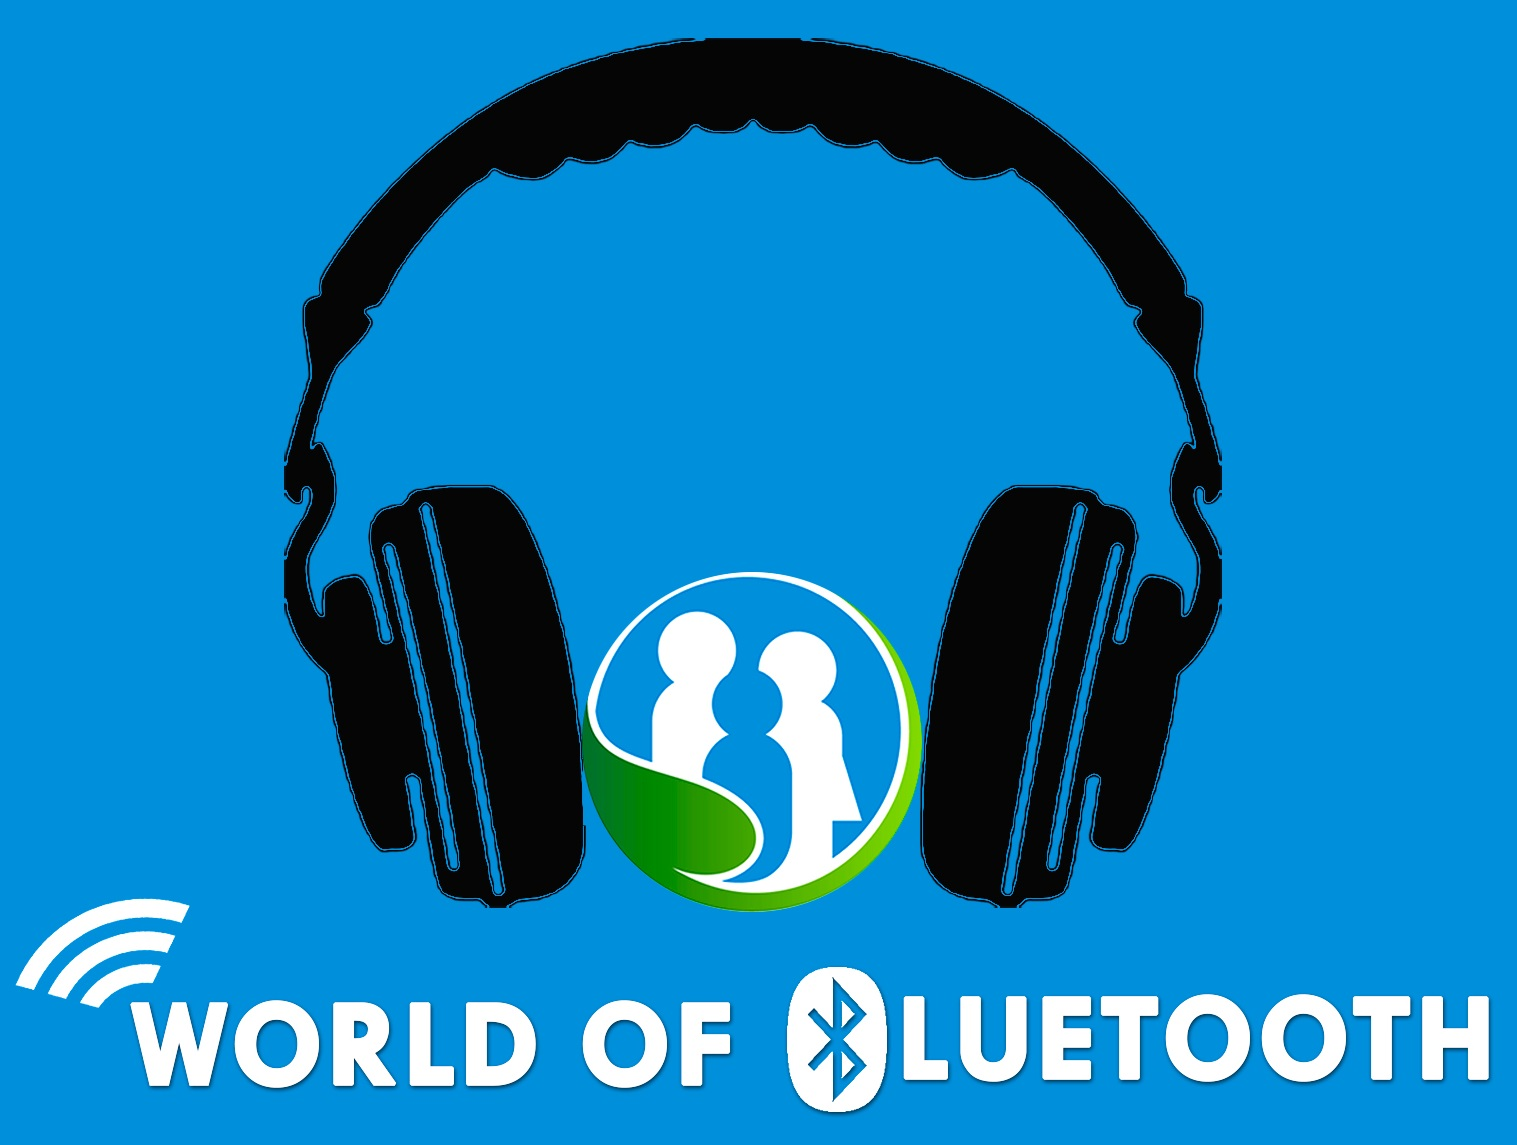 World of Bluetooth